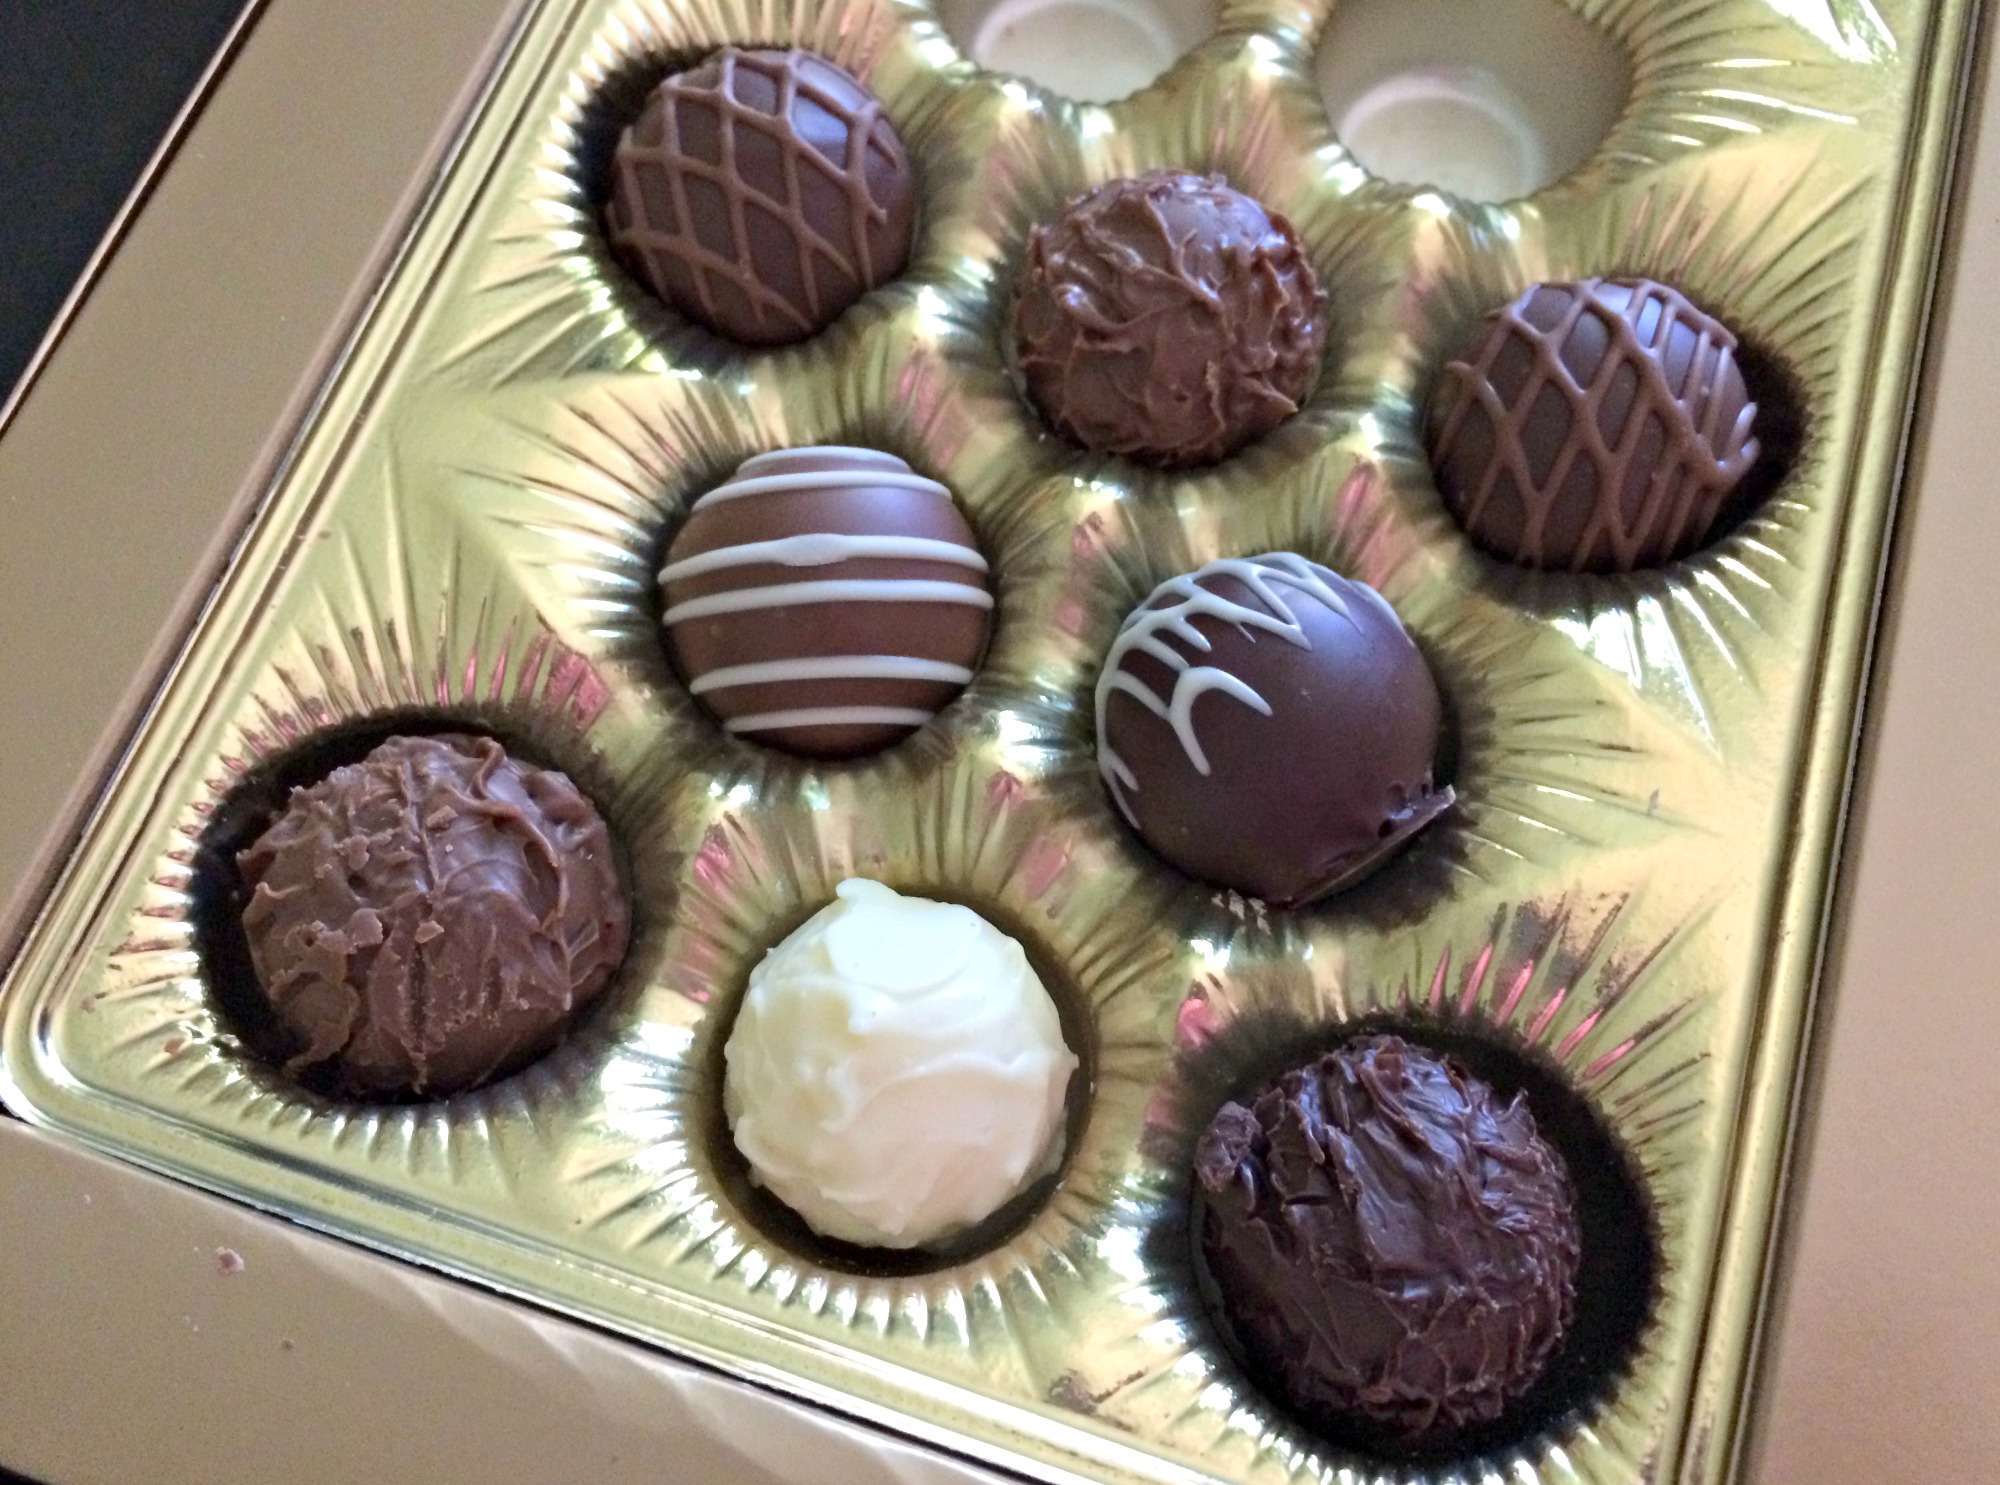 Lindt gourmet chocolate truffles